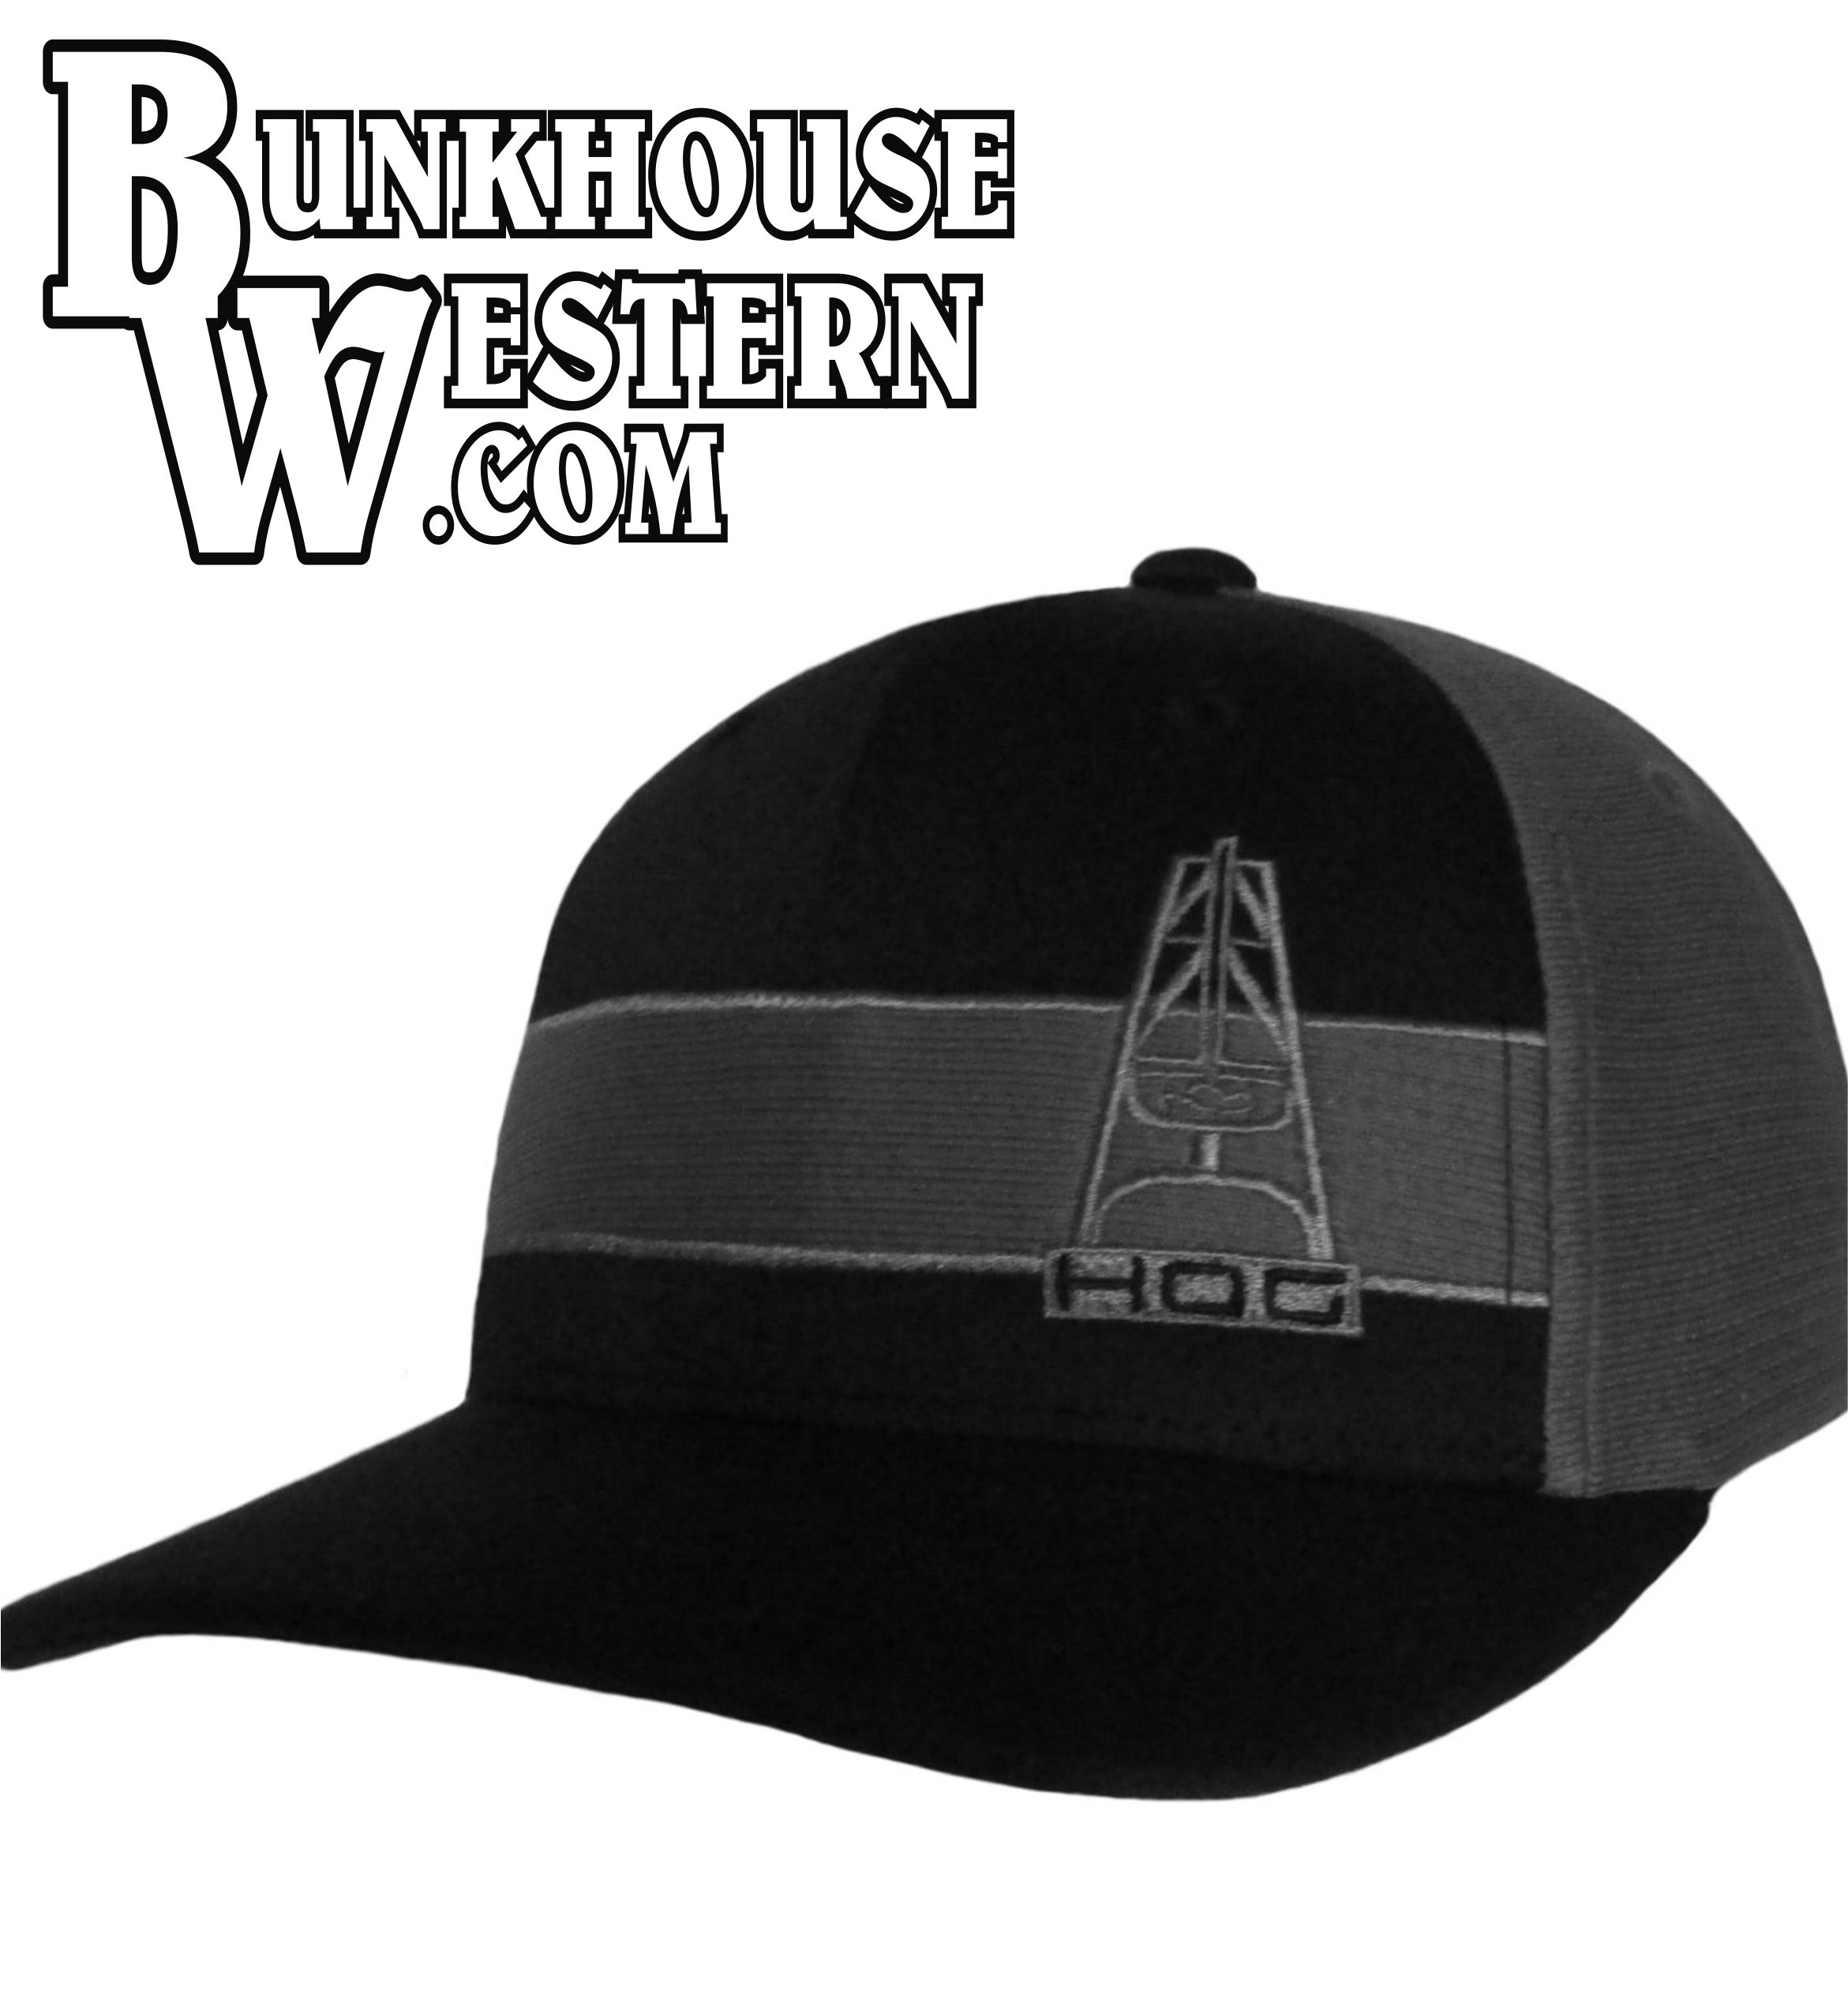 182c329aa88 Pin by BunkhouseWestern.Com on Youth HOOey